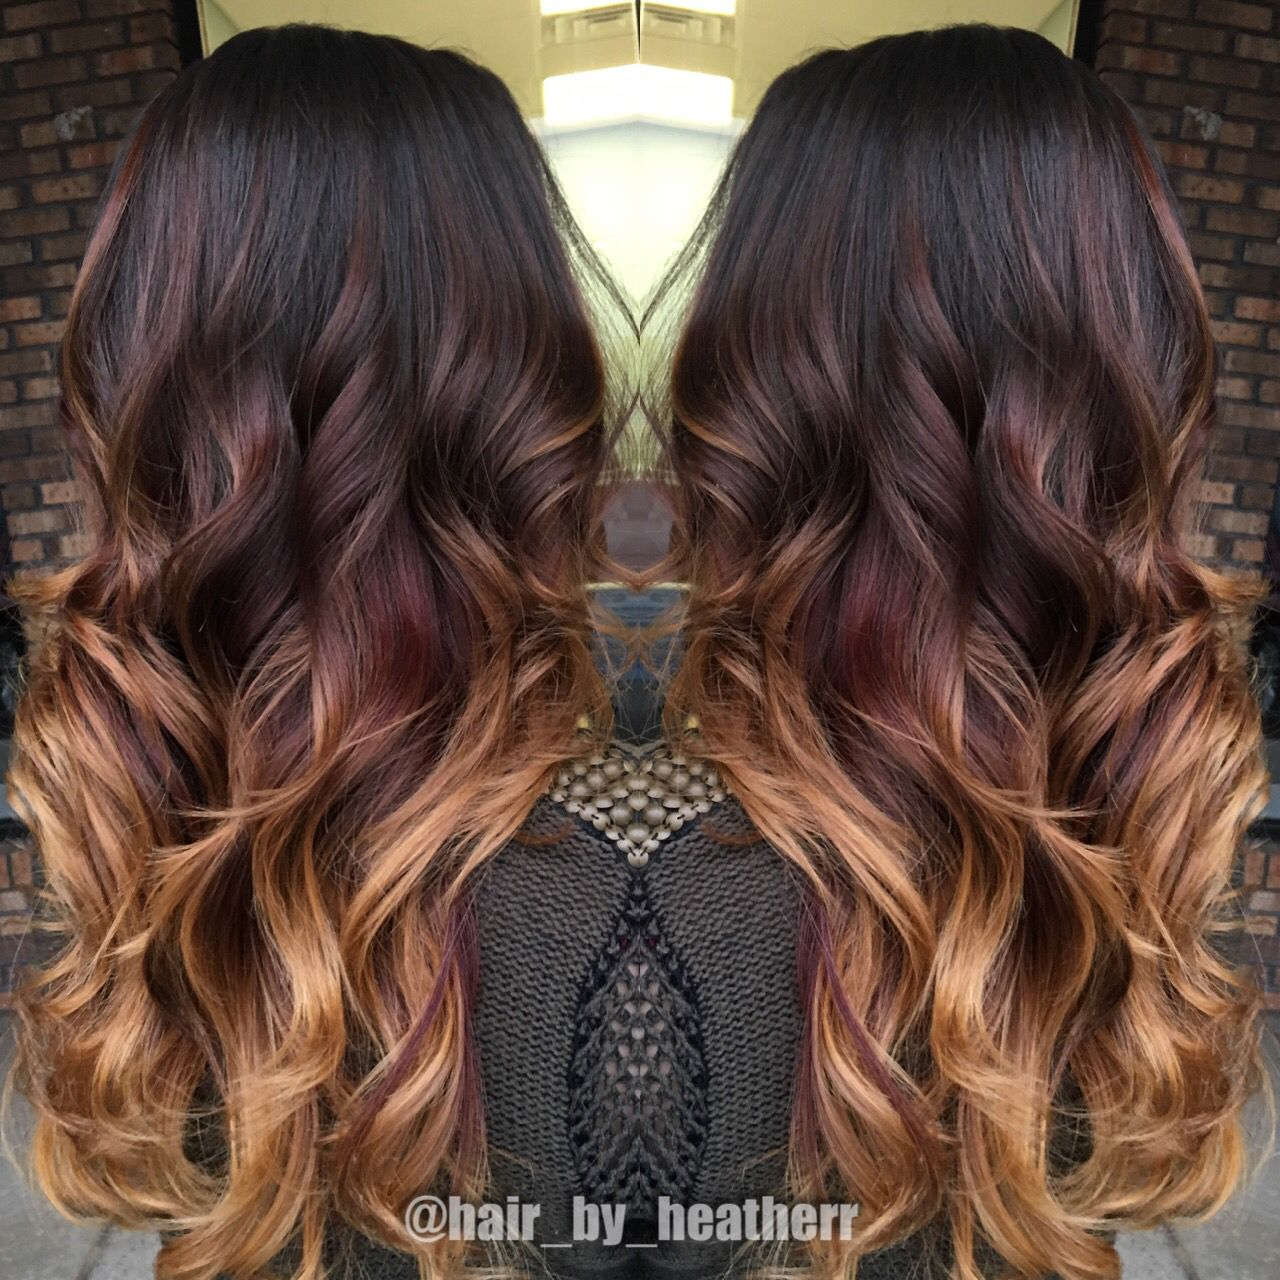 Dark chocolate to red to copper blonde ends! Beautiful balayage ombre!